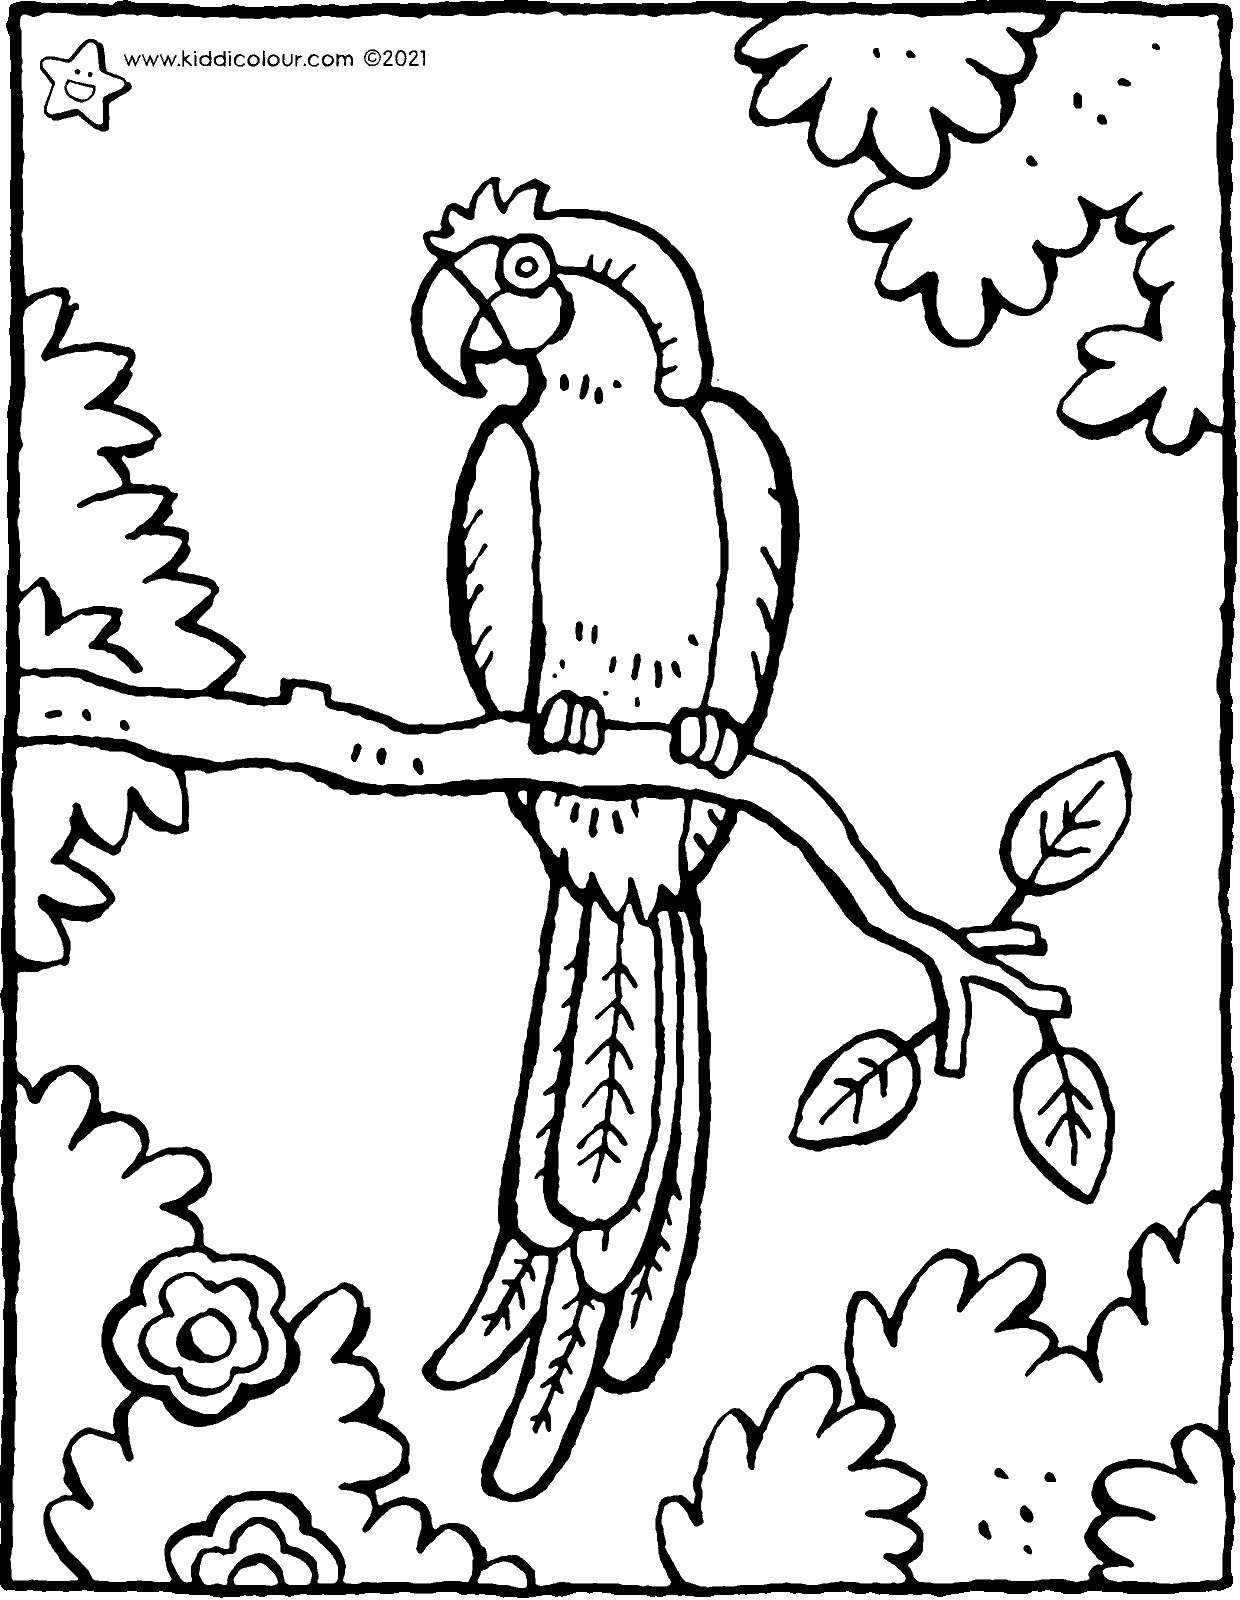 parrot colouring page drawing picture 01V